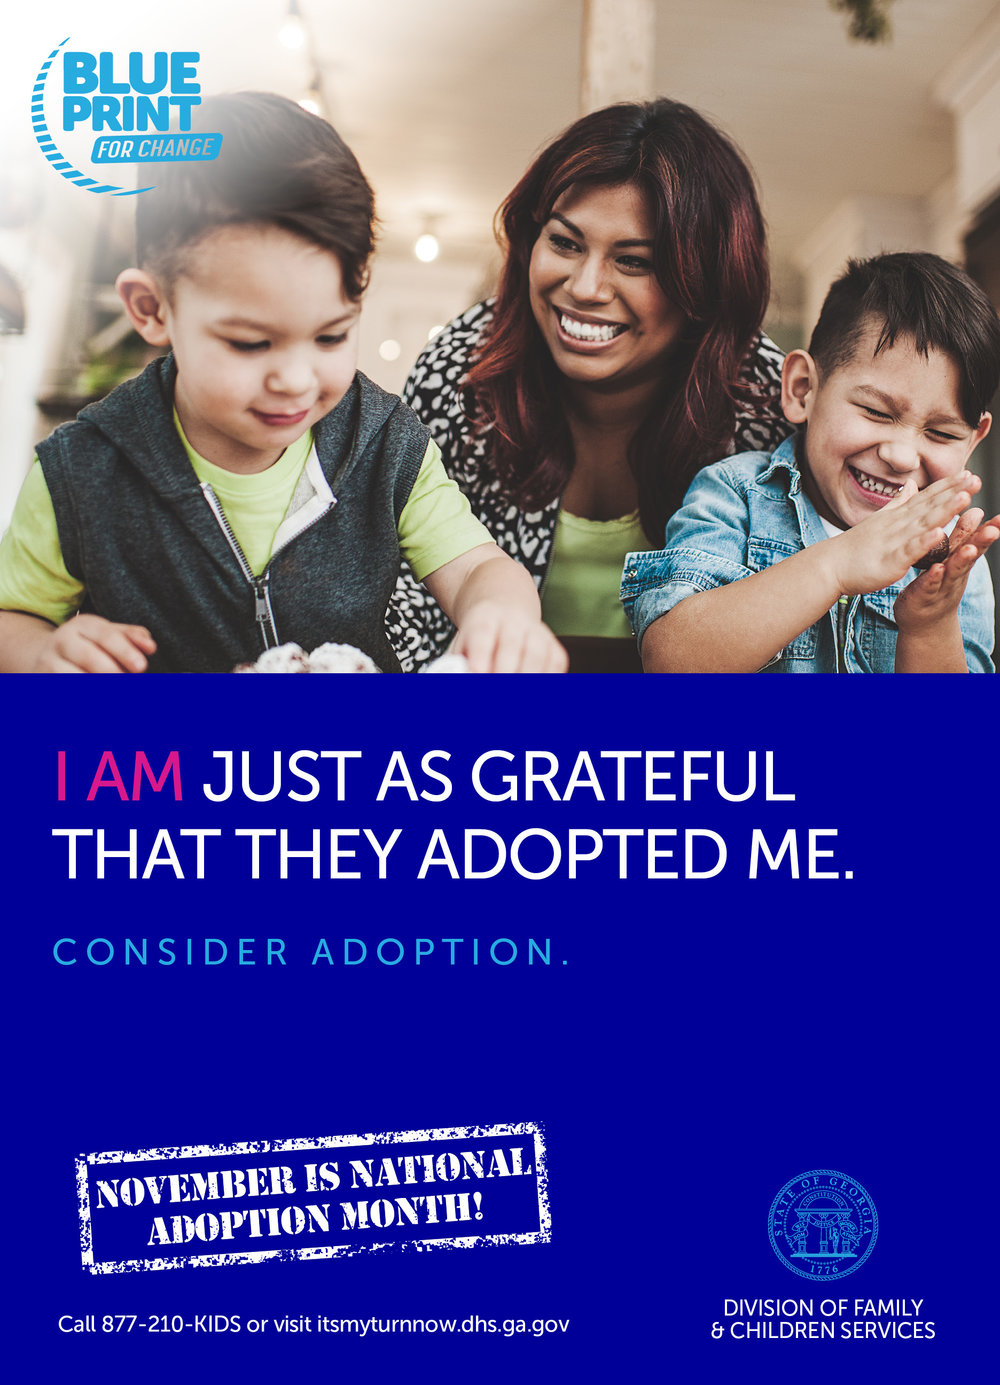 Adoption Poster 4 Grateful.jpeg